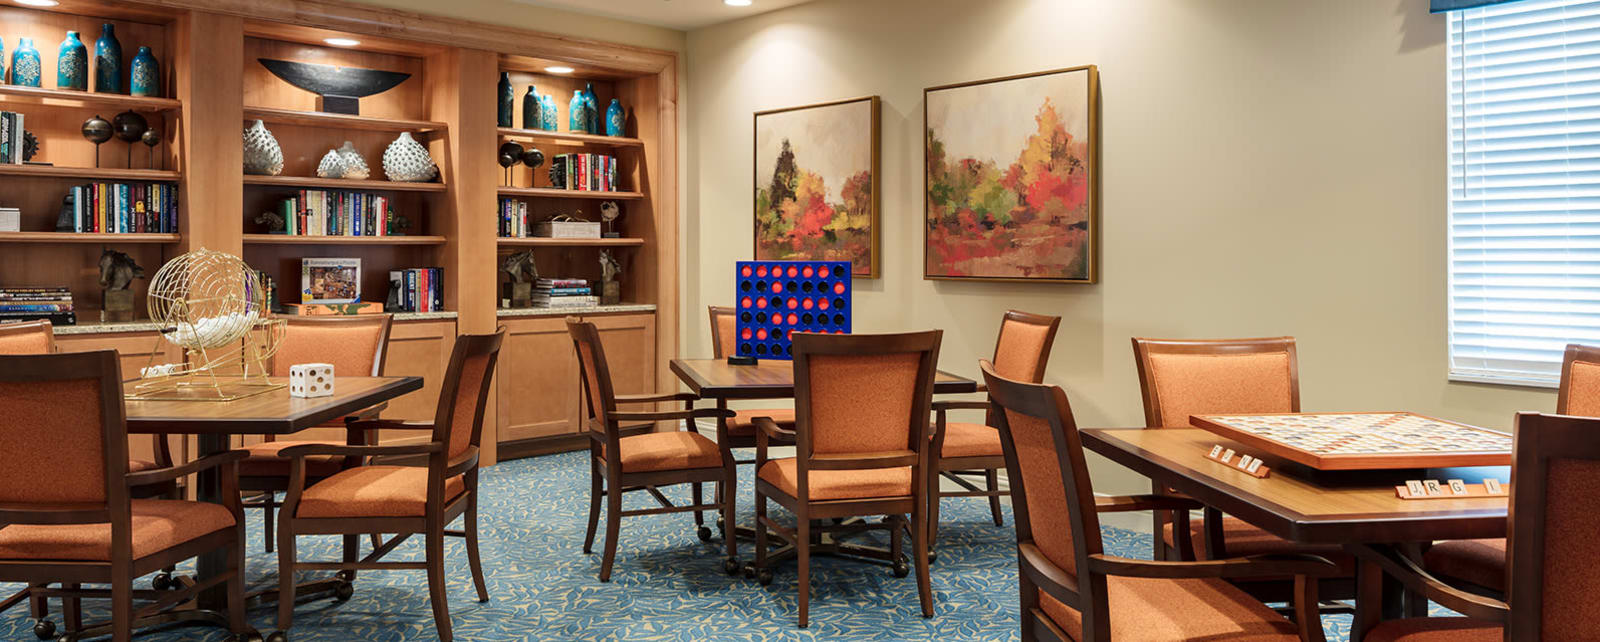 Schedule a senior living tour in Long Grove